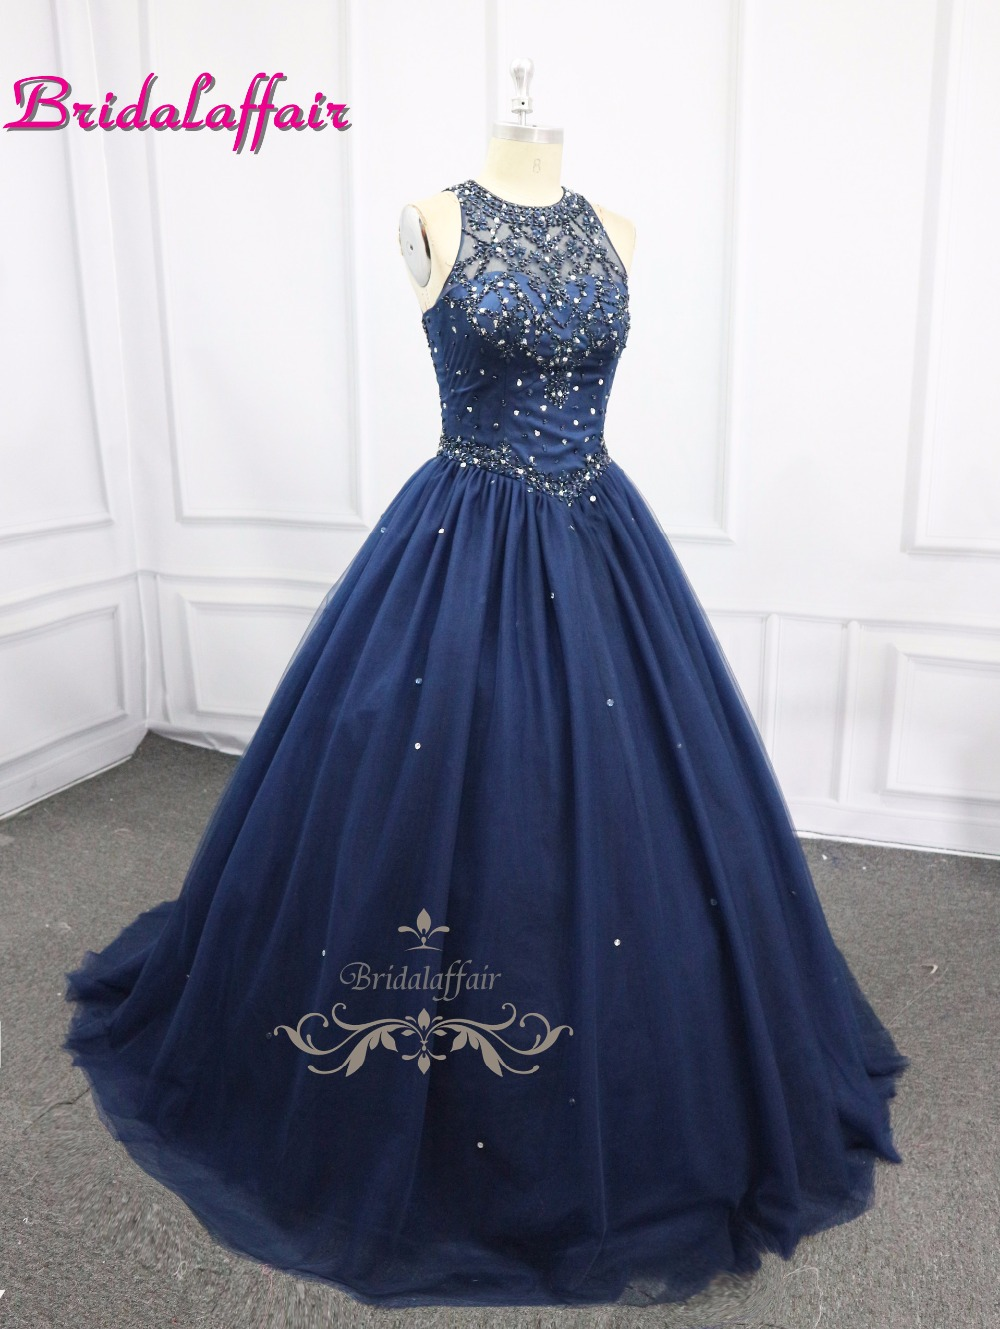 New Dark BlueTwo Piece Short Sleeve Jacket Wedding Dresses 2018 Plus Size Vestido de noiva Robe De Mariage in Wedding Dresses from Weddings Events